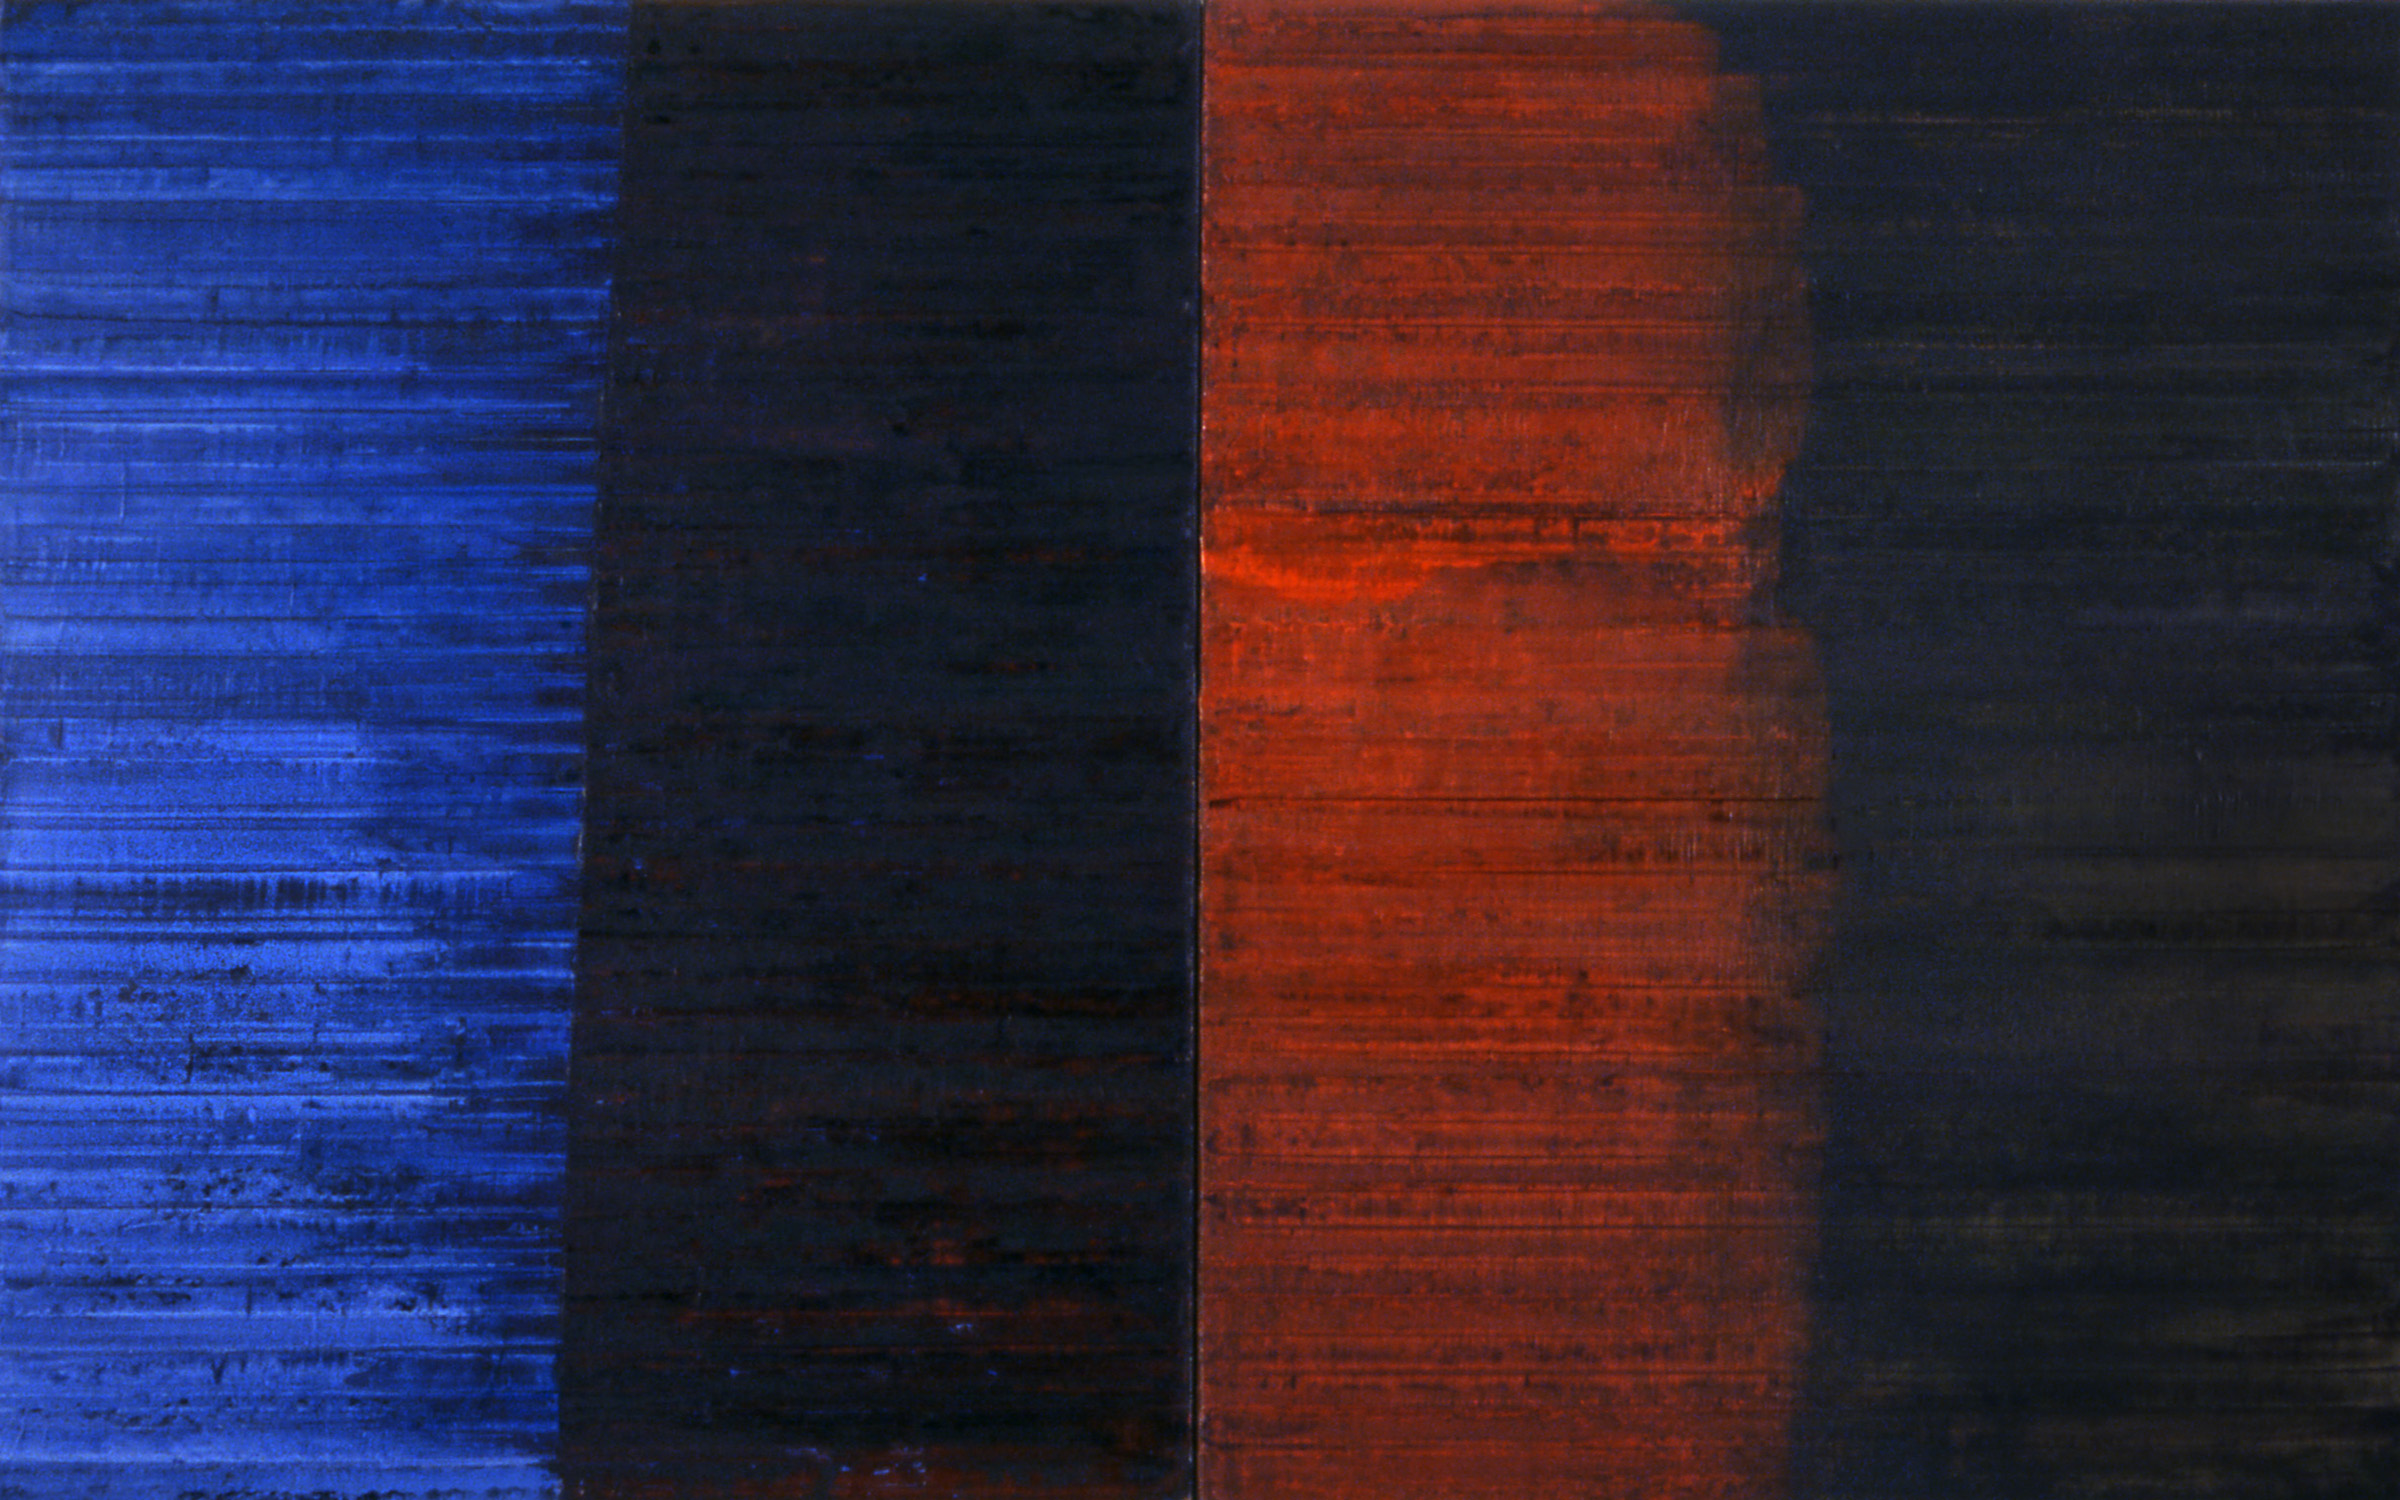 Linea Terminale: 1.06, 2006, Oil on linen over panels, 20 x 36 inches.